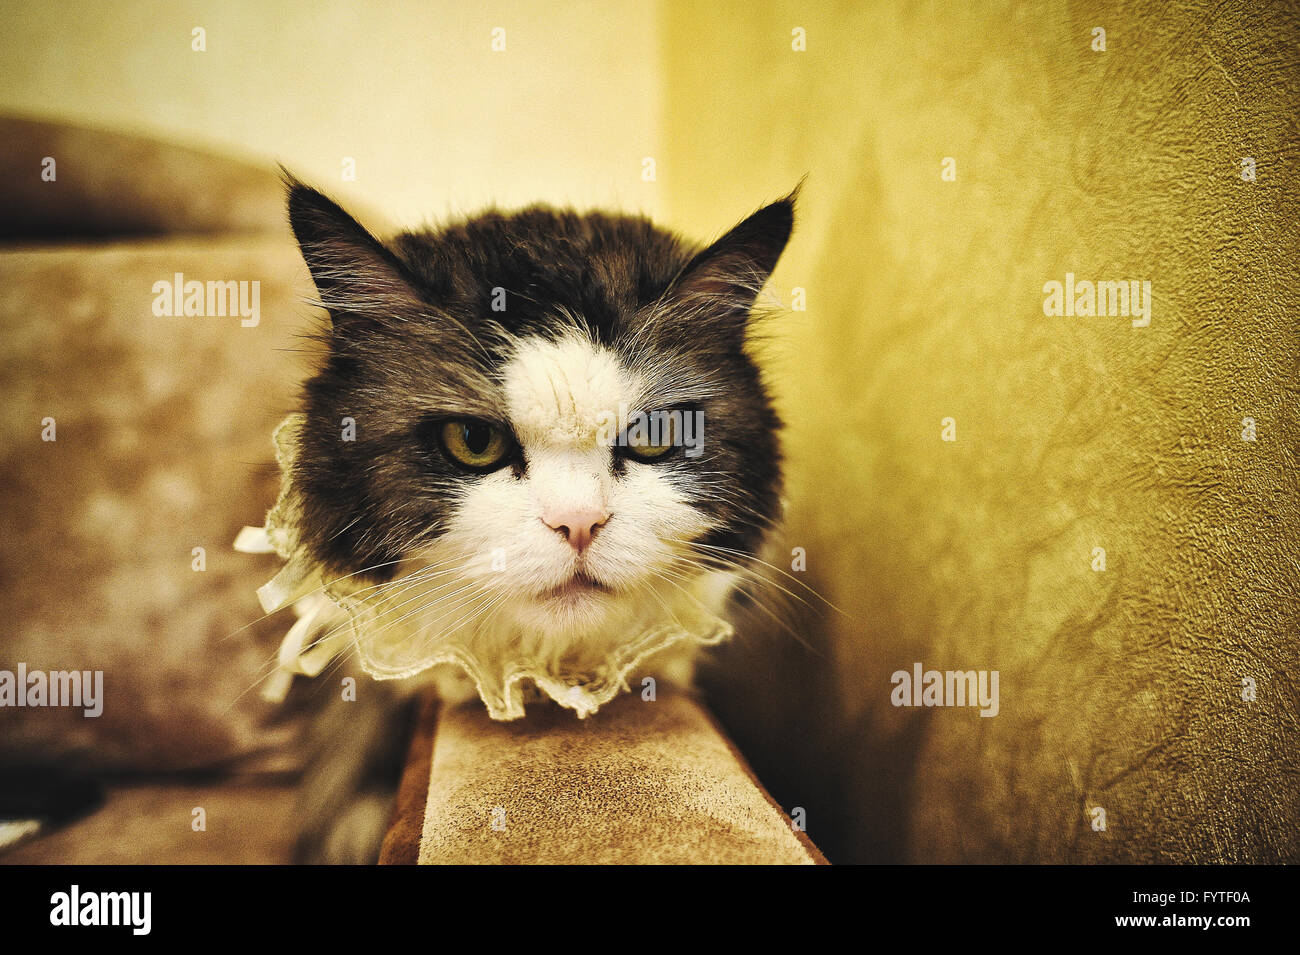 angry and funny wedding cat - Stock Image